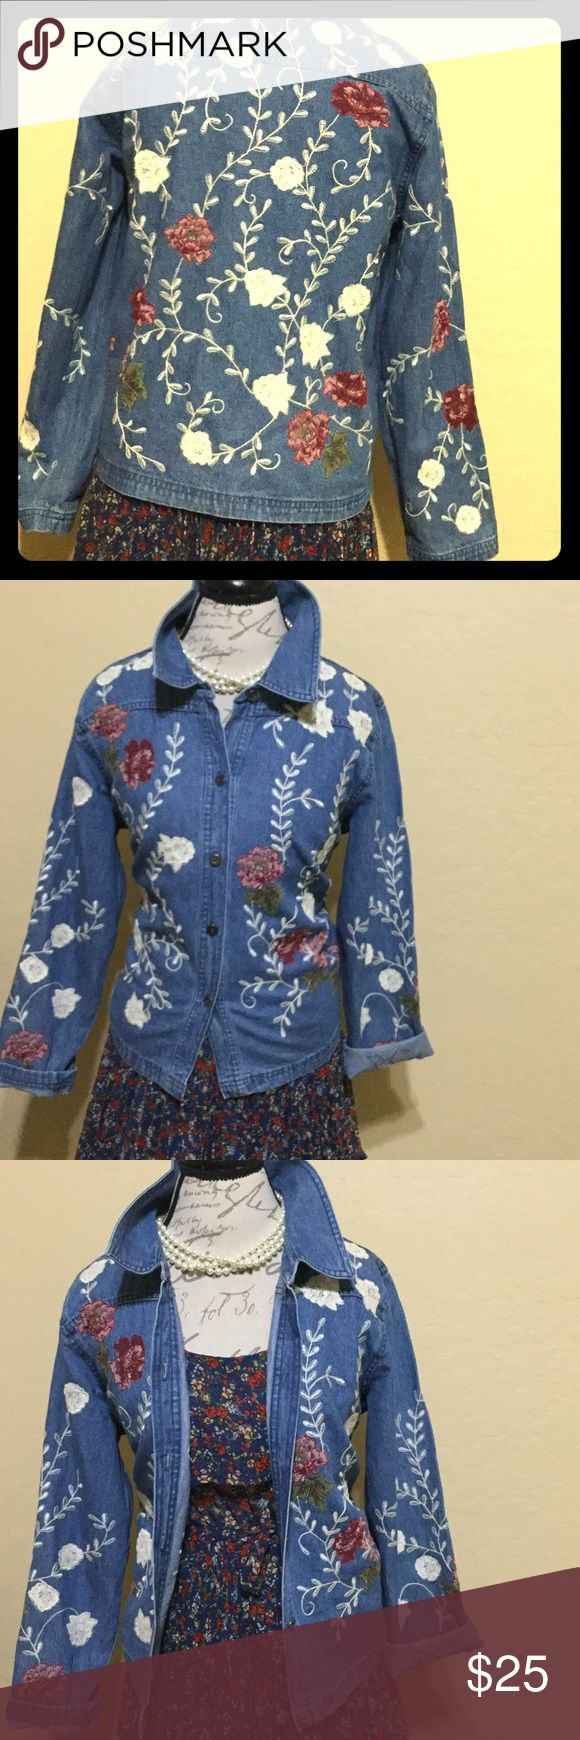 Trendy AF SO hot right now Embroidered Roses Denim Retro wonder! Denim & Co. granny chic insta trendy rise all over embroidered EUC relaxed fit denim shirt! The search is over 👍🌹🌹🌹🌹🌹🌷🌷🌷🌷🌷🌷🌷21' pit to pit and 20' long shoulder to hem. Fits 12-14 fitted  like style inspiration and anything smaller boyfriend style👍 Vintage Tops